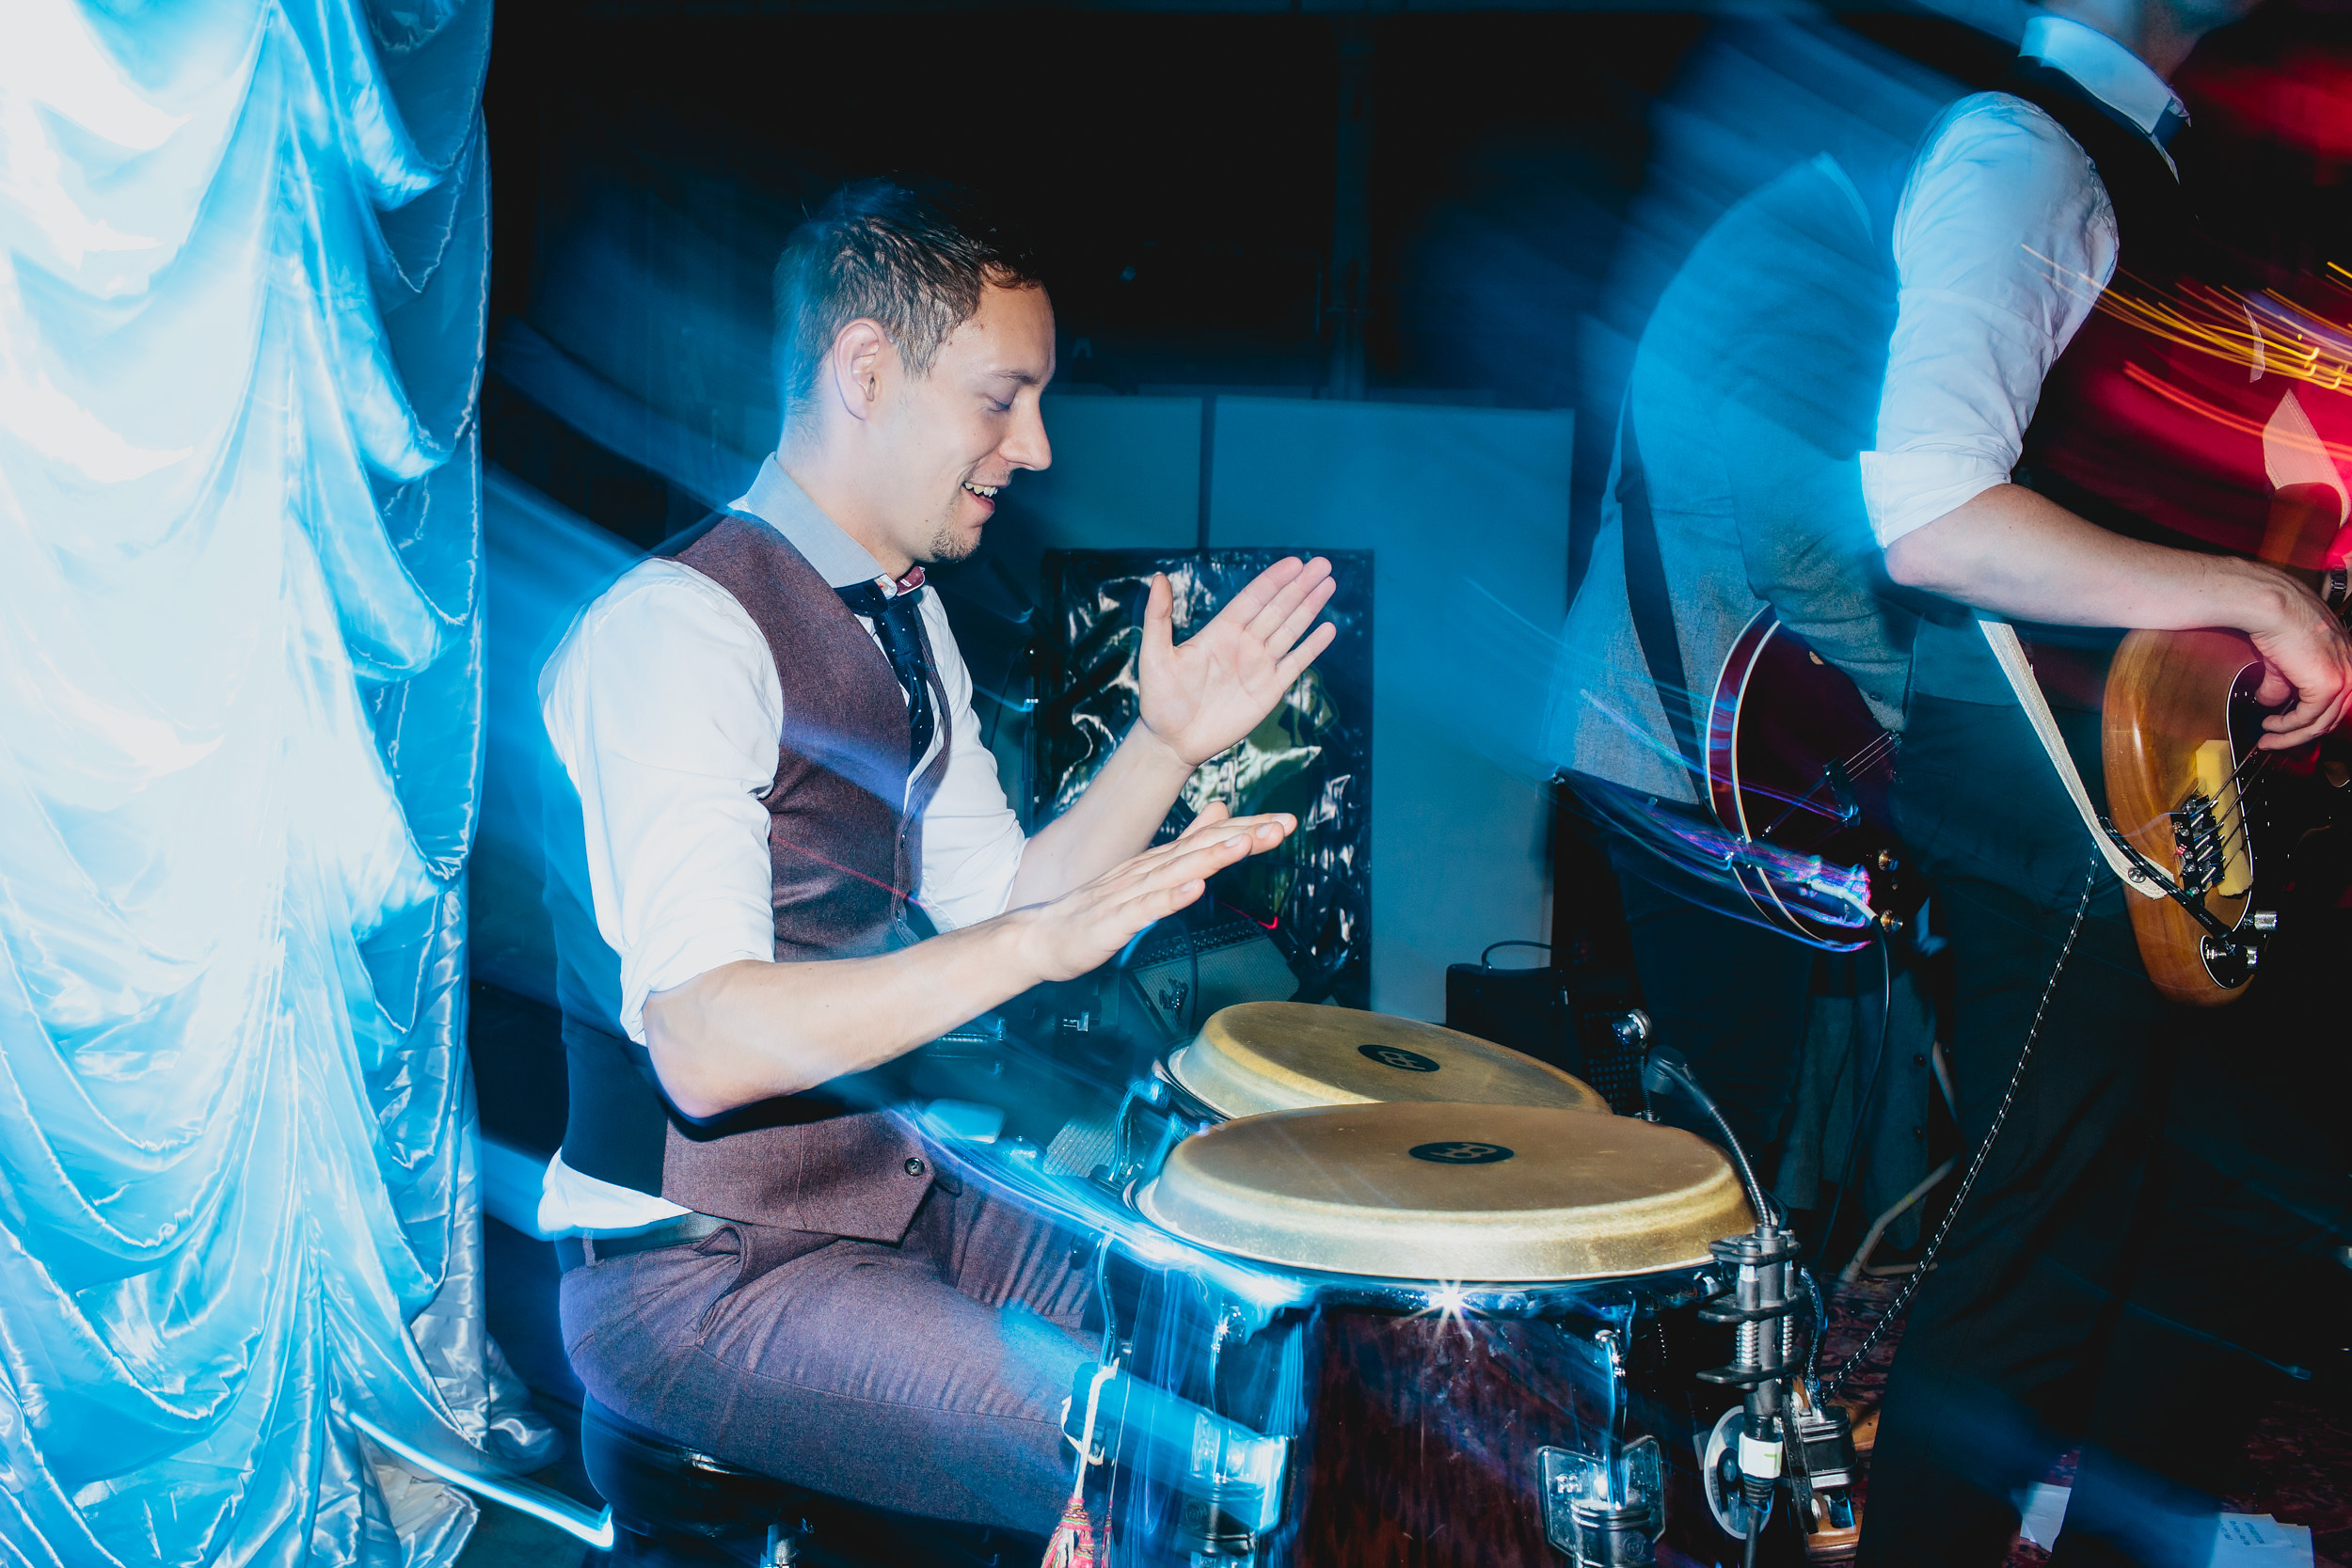 Musician playing congas in Yorkshire